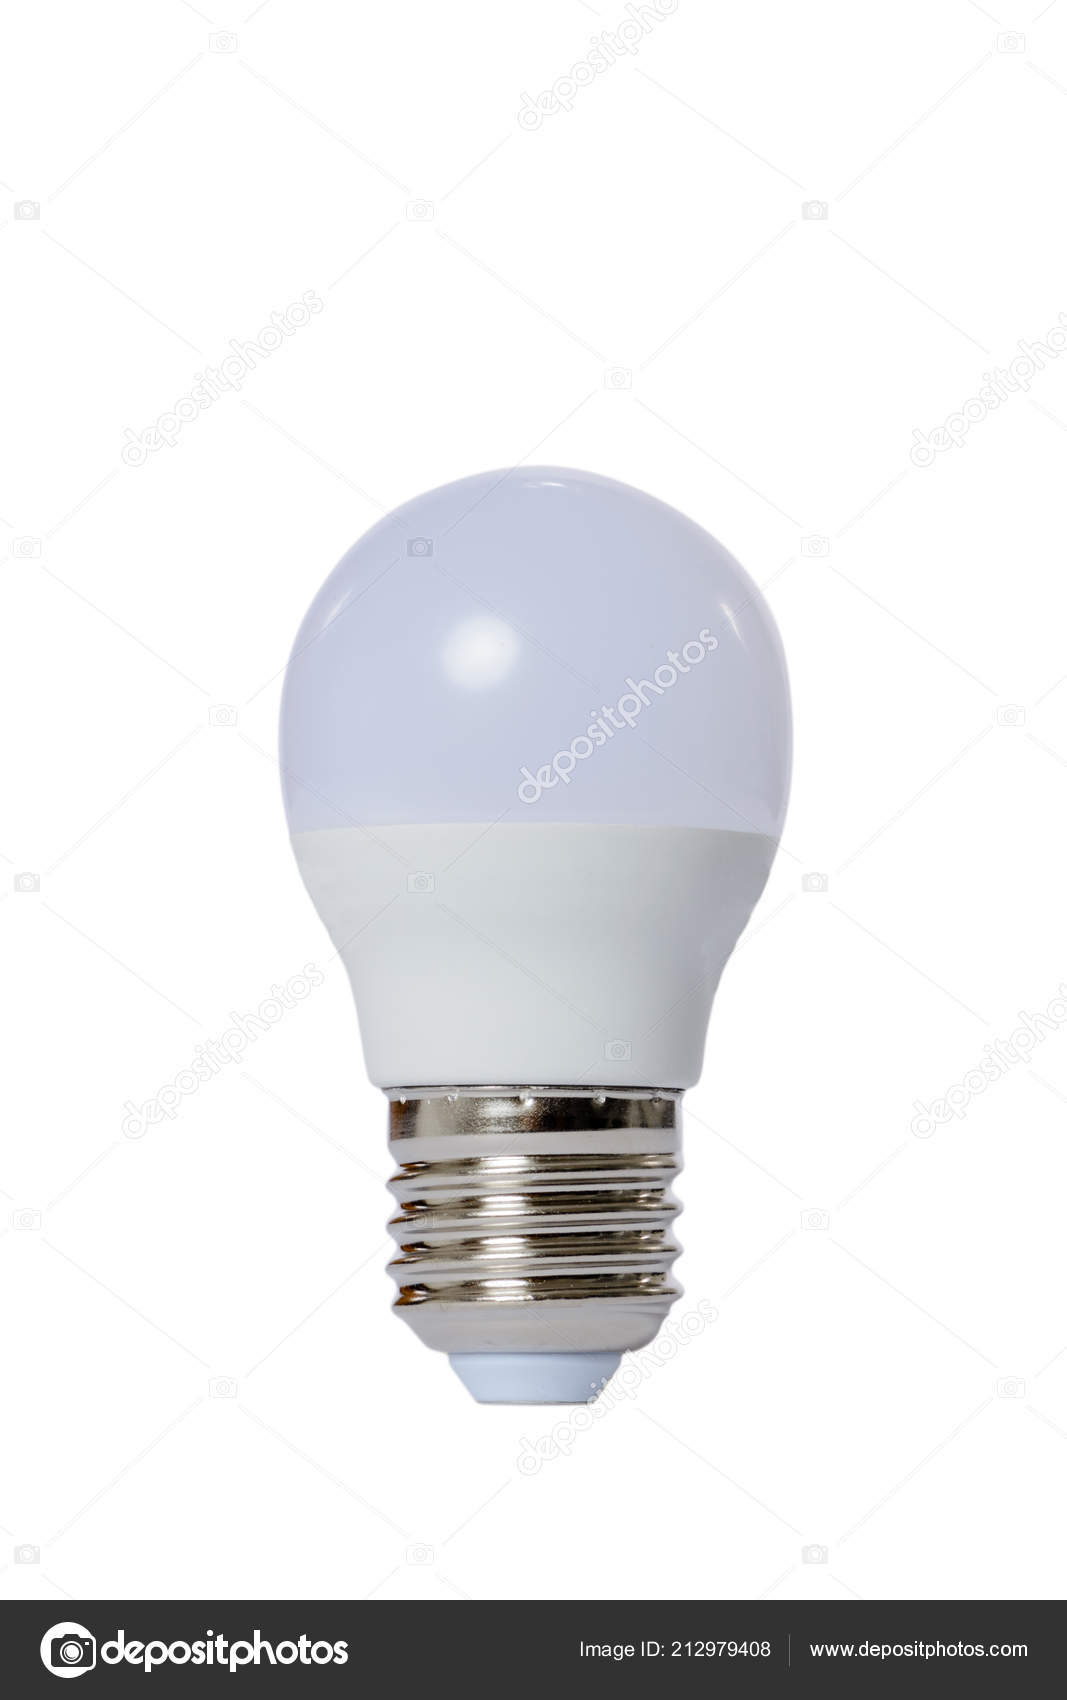 E27 Sockel Led Lamp Opaque Glass Bulb E27 Socket White Background Stock